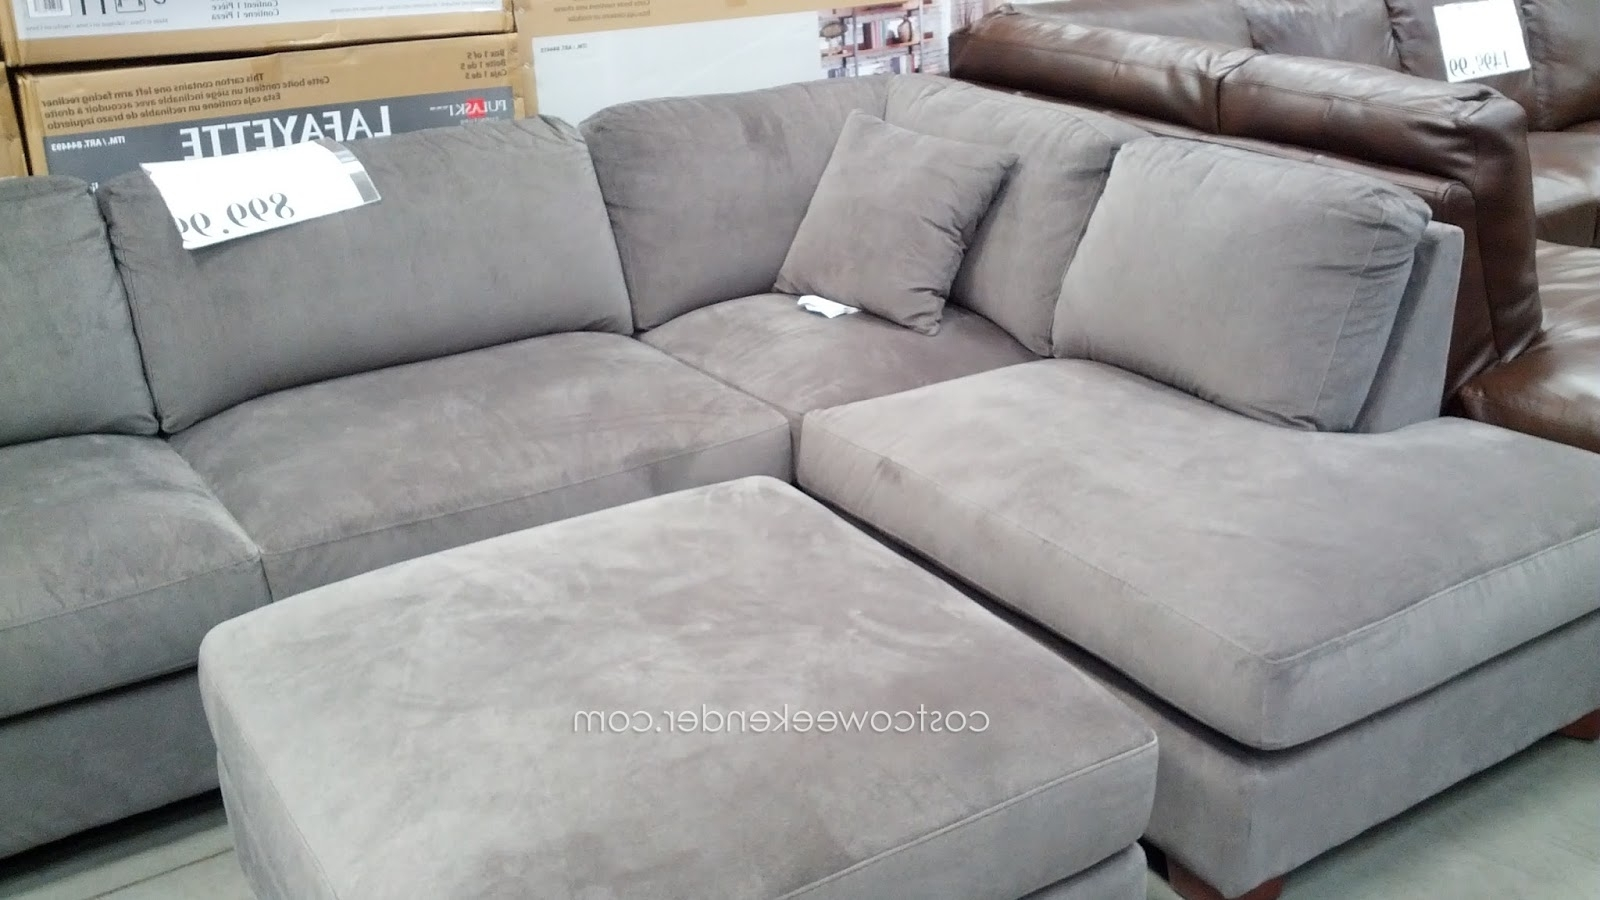 Favorite Sectional Sofa Design: Lovely Sectional Sofas Costco Leather Throughout Sectional Sofas At Costco (View 9 of 20)